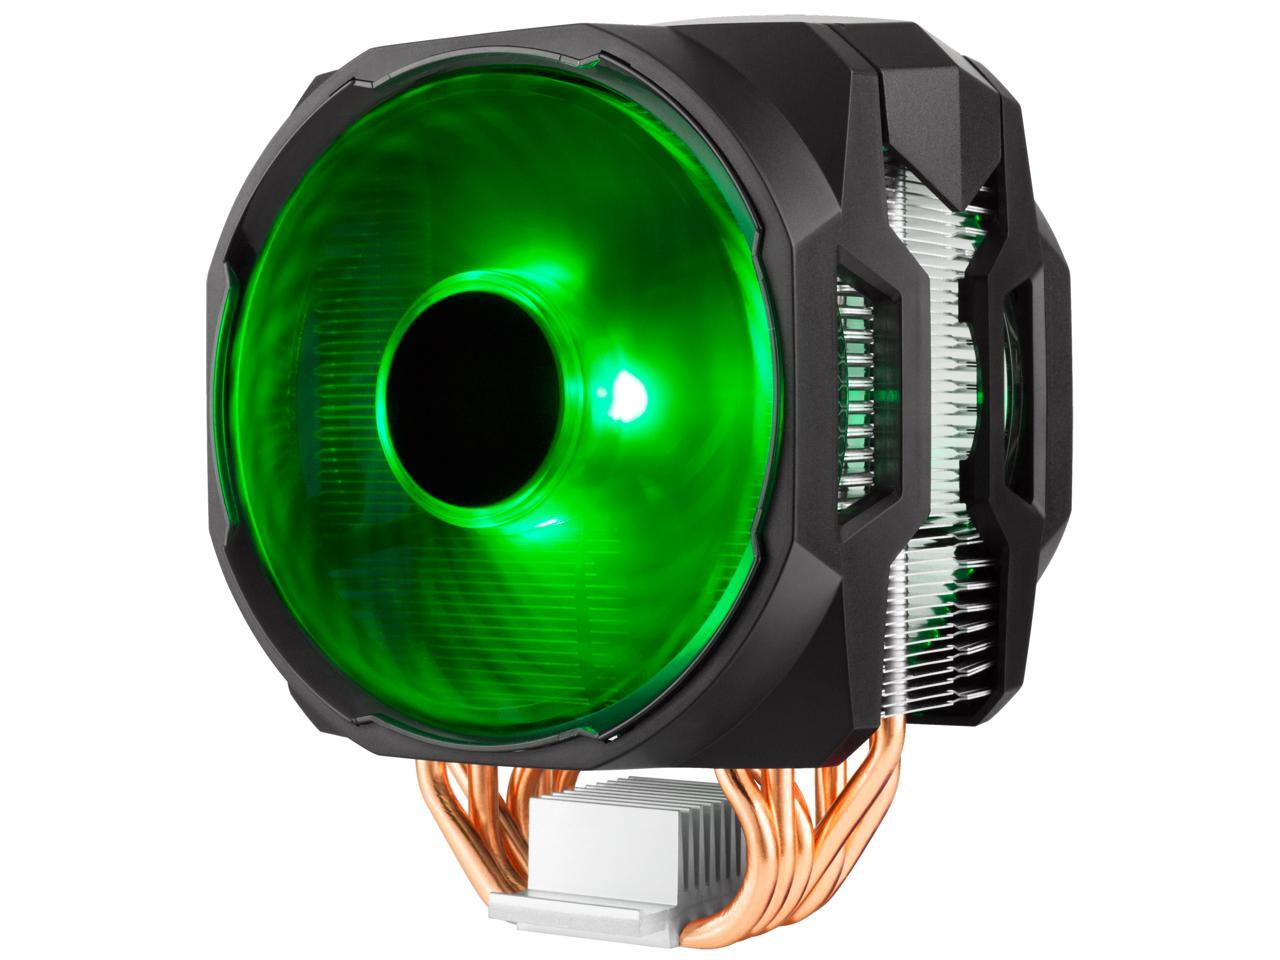 Cooler Master MA610P RGB CPU Air Cooler 6 CDC Heat Pipes Master Fan